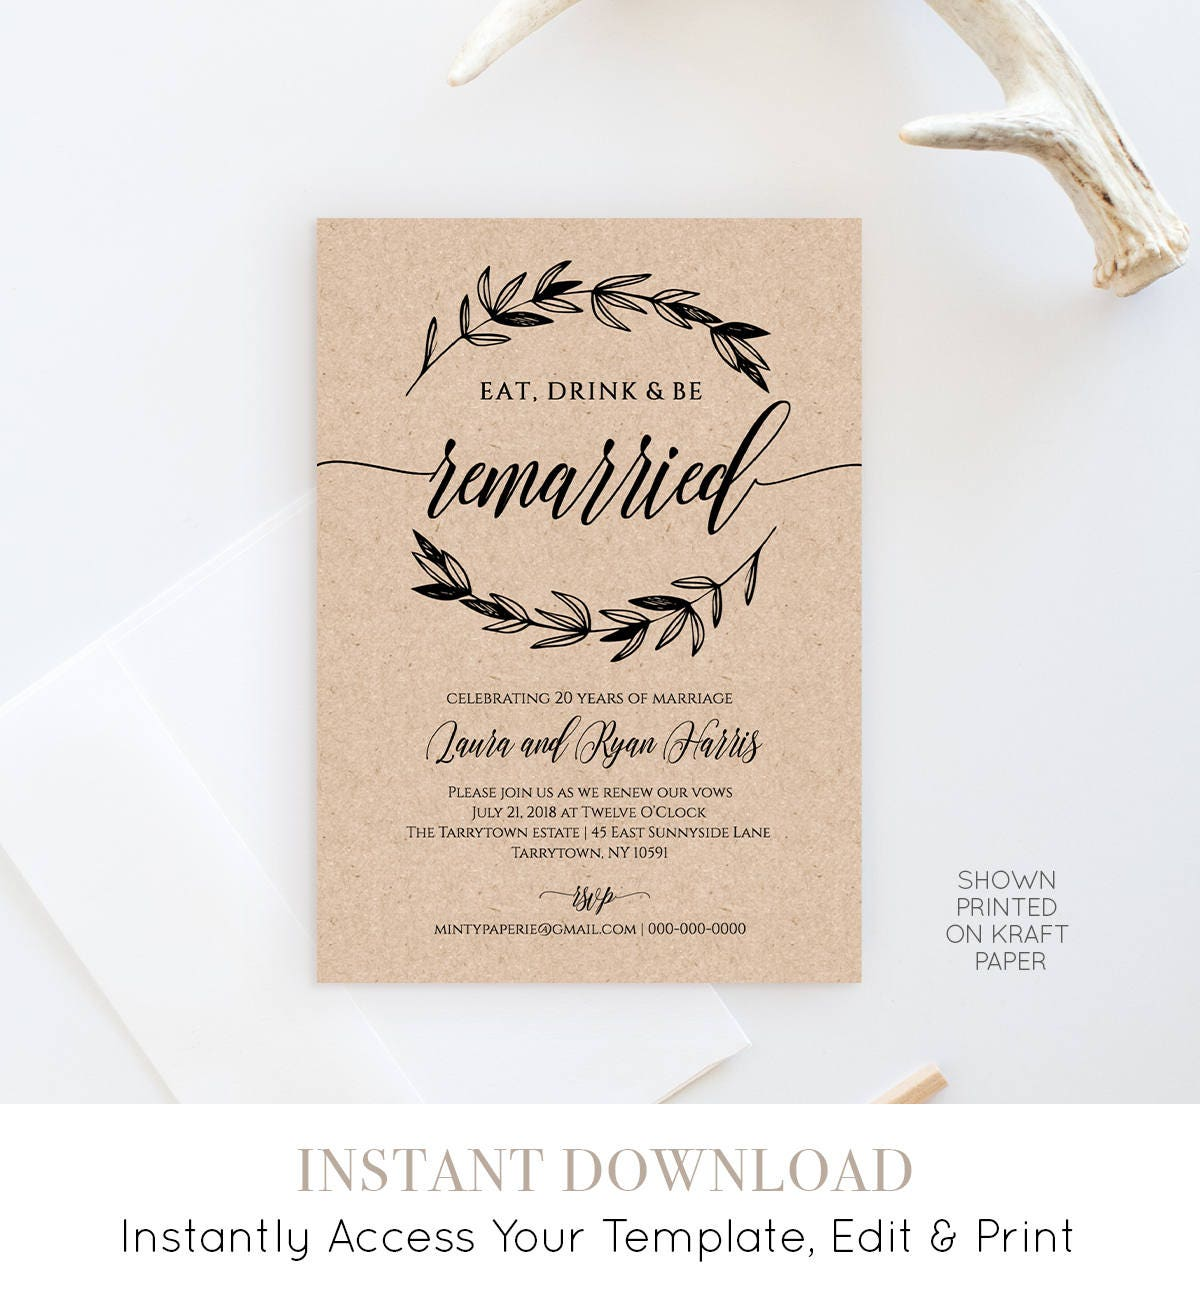 Vow Renewal Invitation Template, Eat Drink Be Married, Instant ...